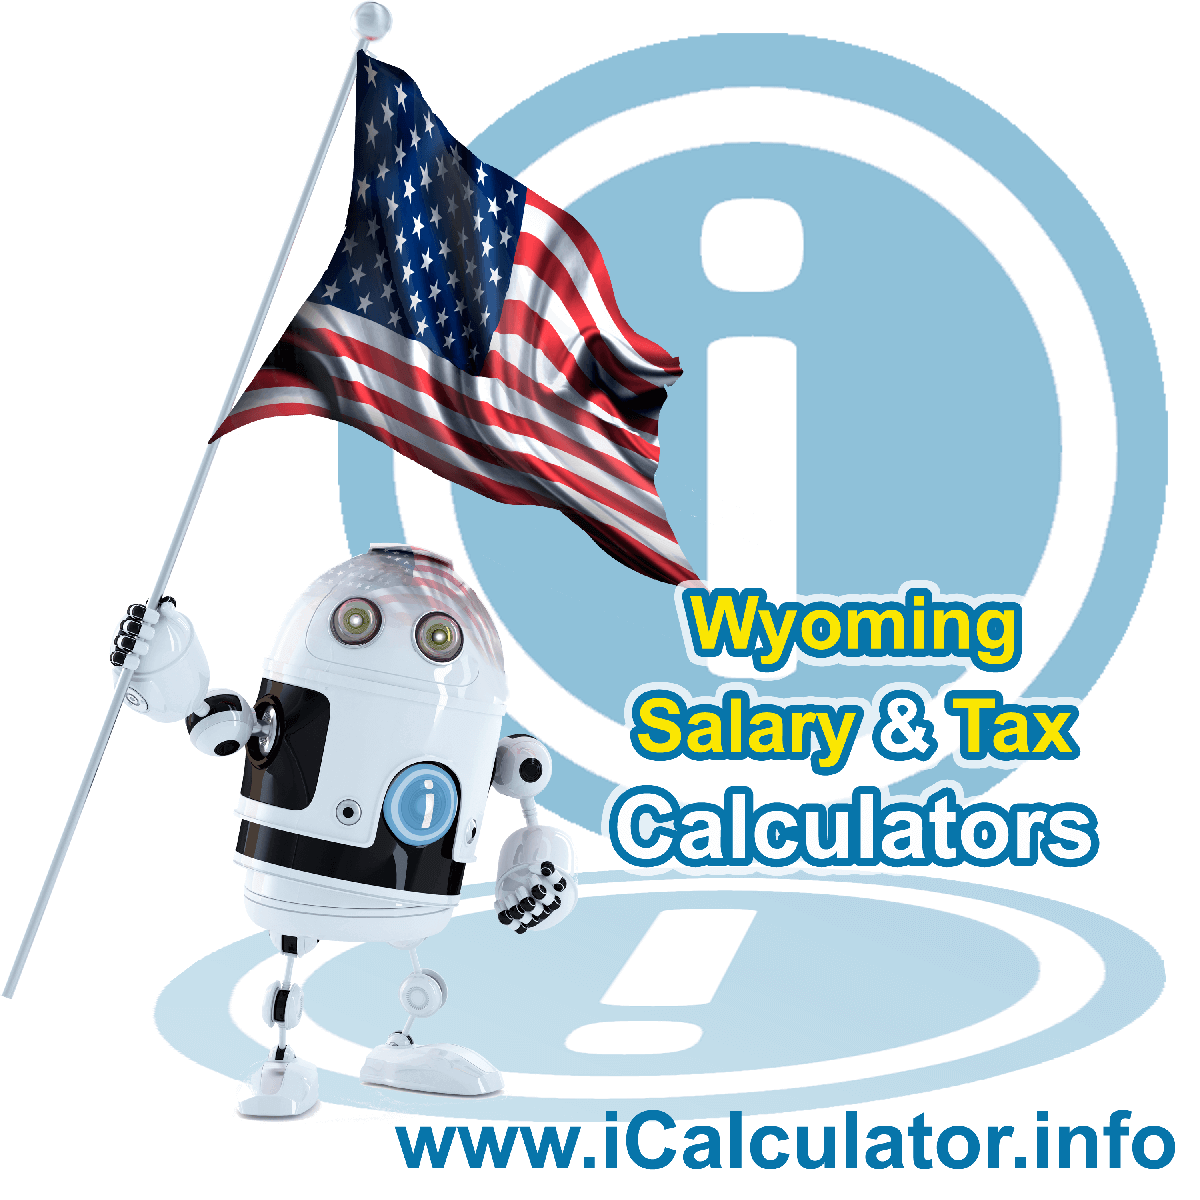 Wyoming Salary Calculator 2021 | iCalculator™ | The Wyoming Salary Calculator allows you to quickly calculate your salary after tax including Wyoming State Tax, Federal State Tax, Medicare Deductions, Social Security, Capital Gains and other income tax and salary deductions complete with supporting Wyoming state tax tables